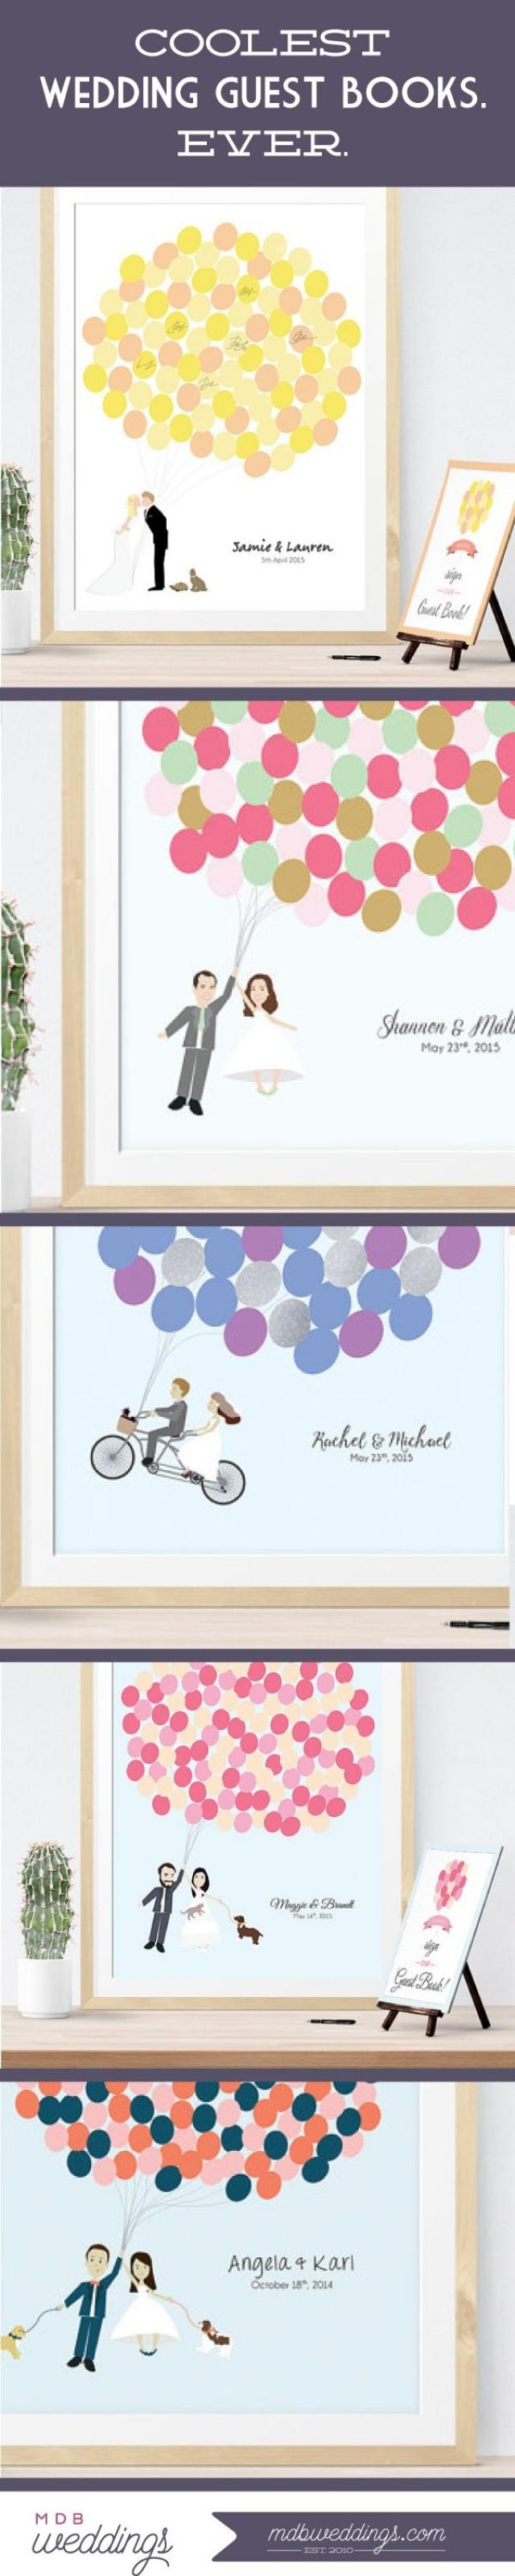 wedding photo - Coolest Guest Books EVER!